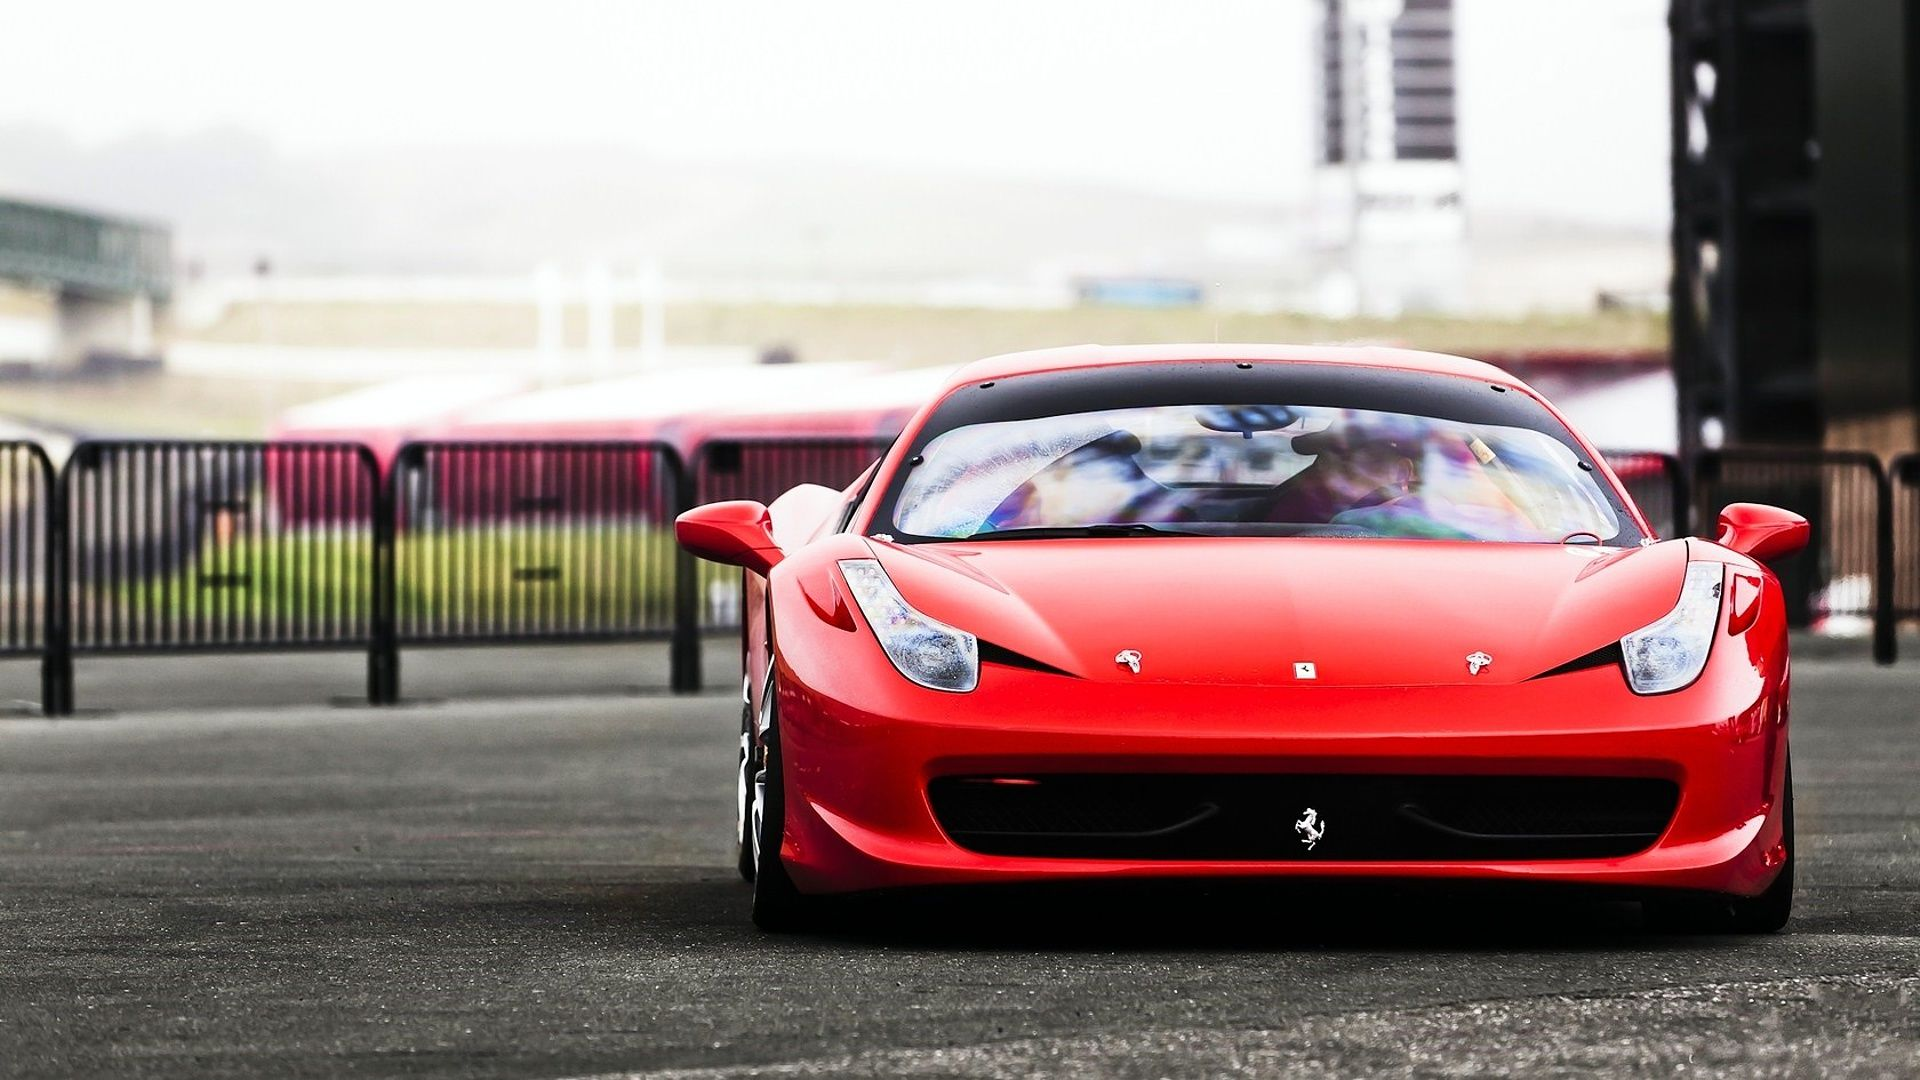 coolest collection of ferrari wallpaper backgrounds in hd   hd